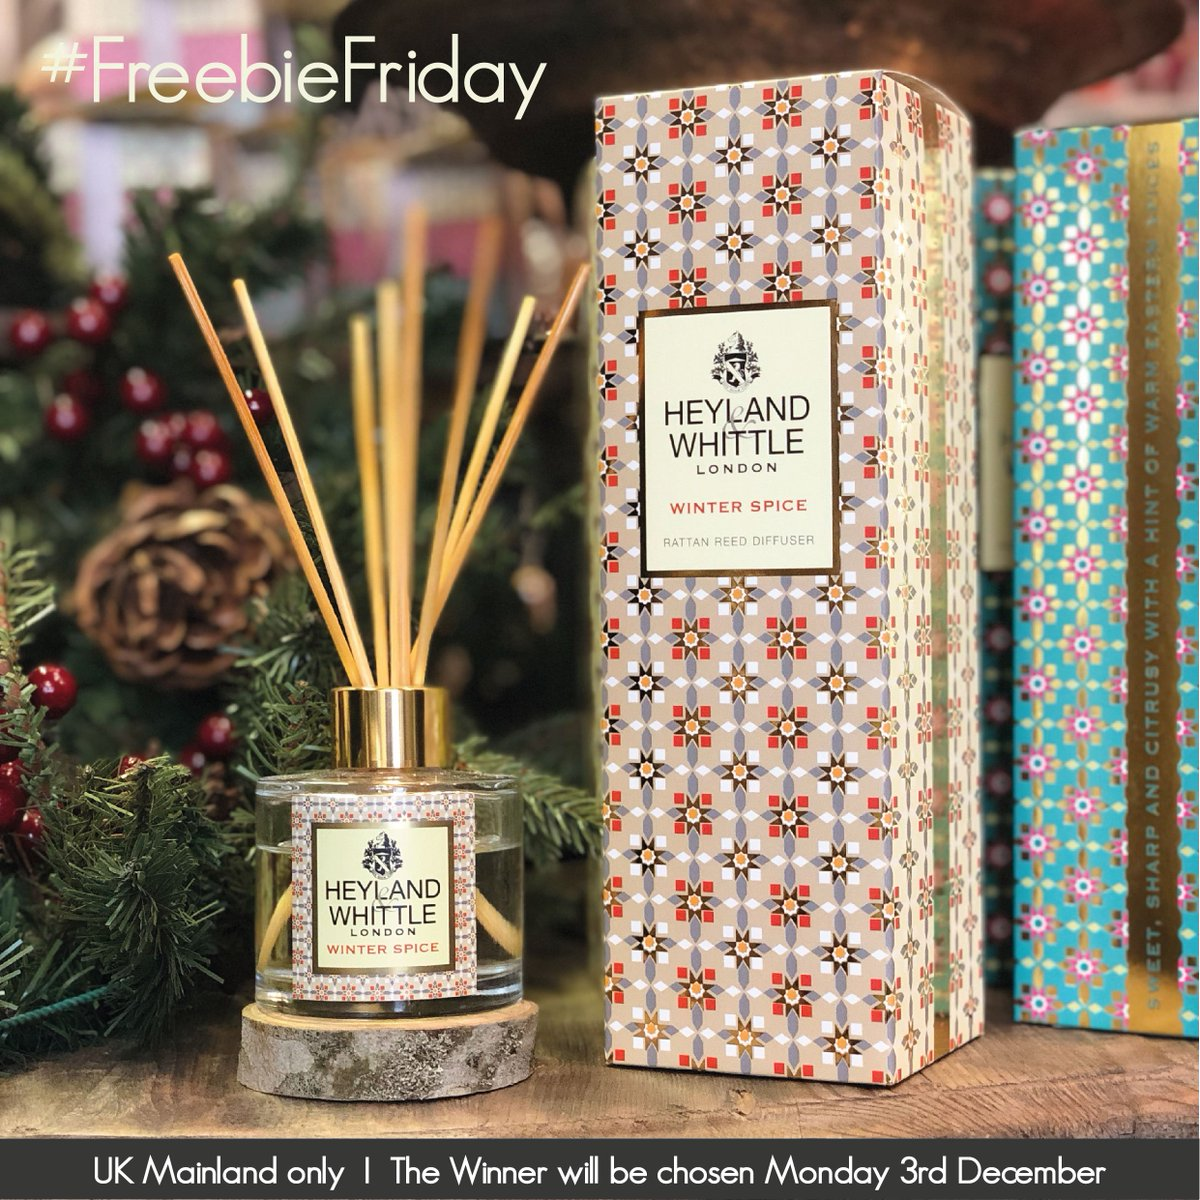 Happy #FreebieFriday! We are giving away one Winter Spice Reed Diffuser. To enter, like this post and tag a friend. Best of luck to all! #LikeToWin #Giveaway #HomeFragrance #TagAFriend #Competition #CompetitionTime #ReedDiffuser #GiftIdeas #GiftForEveryone #christmasgifts<br>http://pic.twitter.com/ZxzCYlv2FV